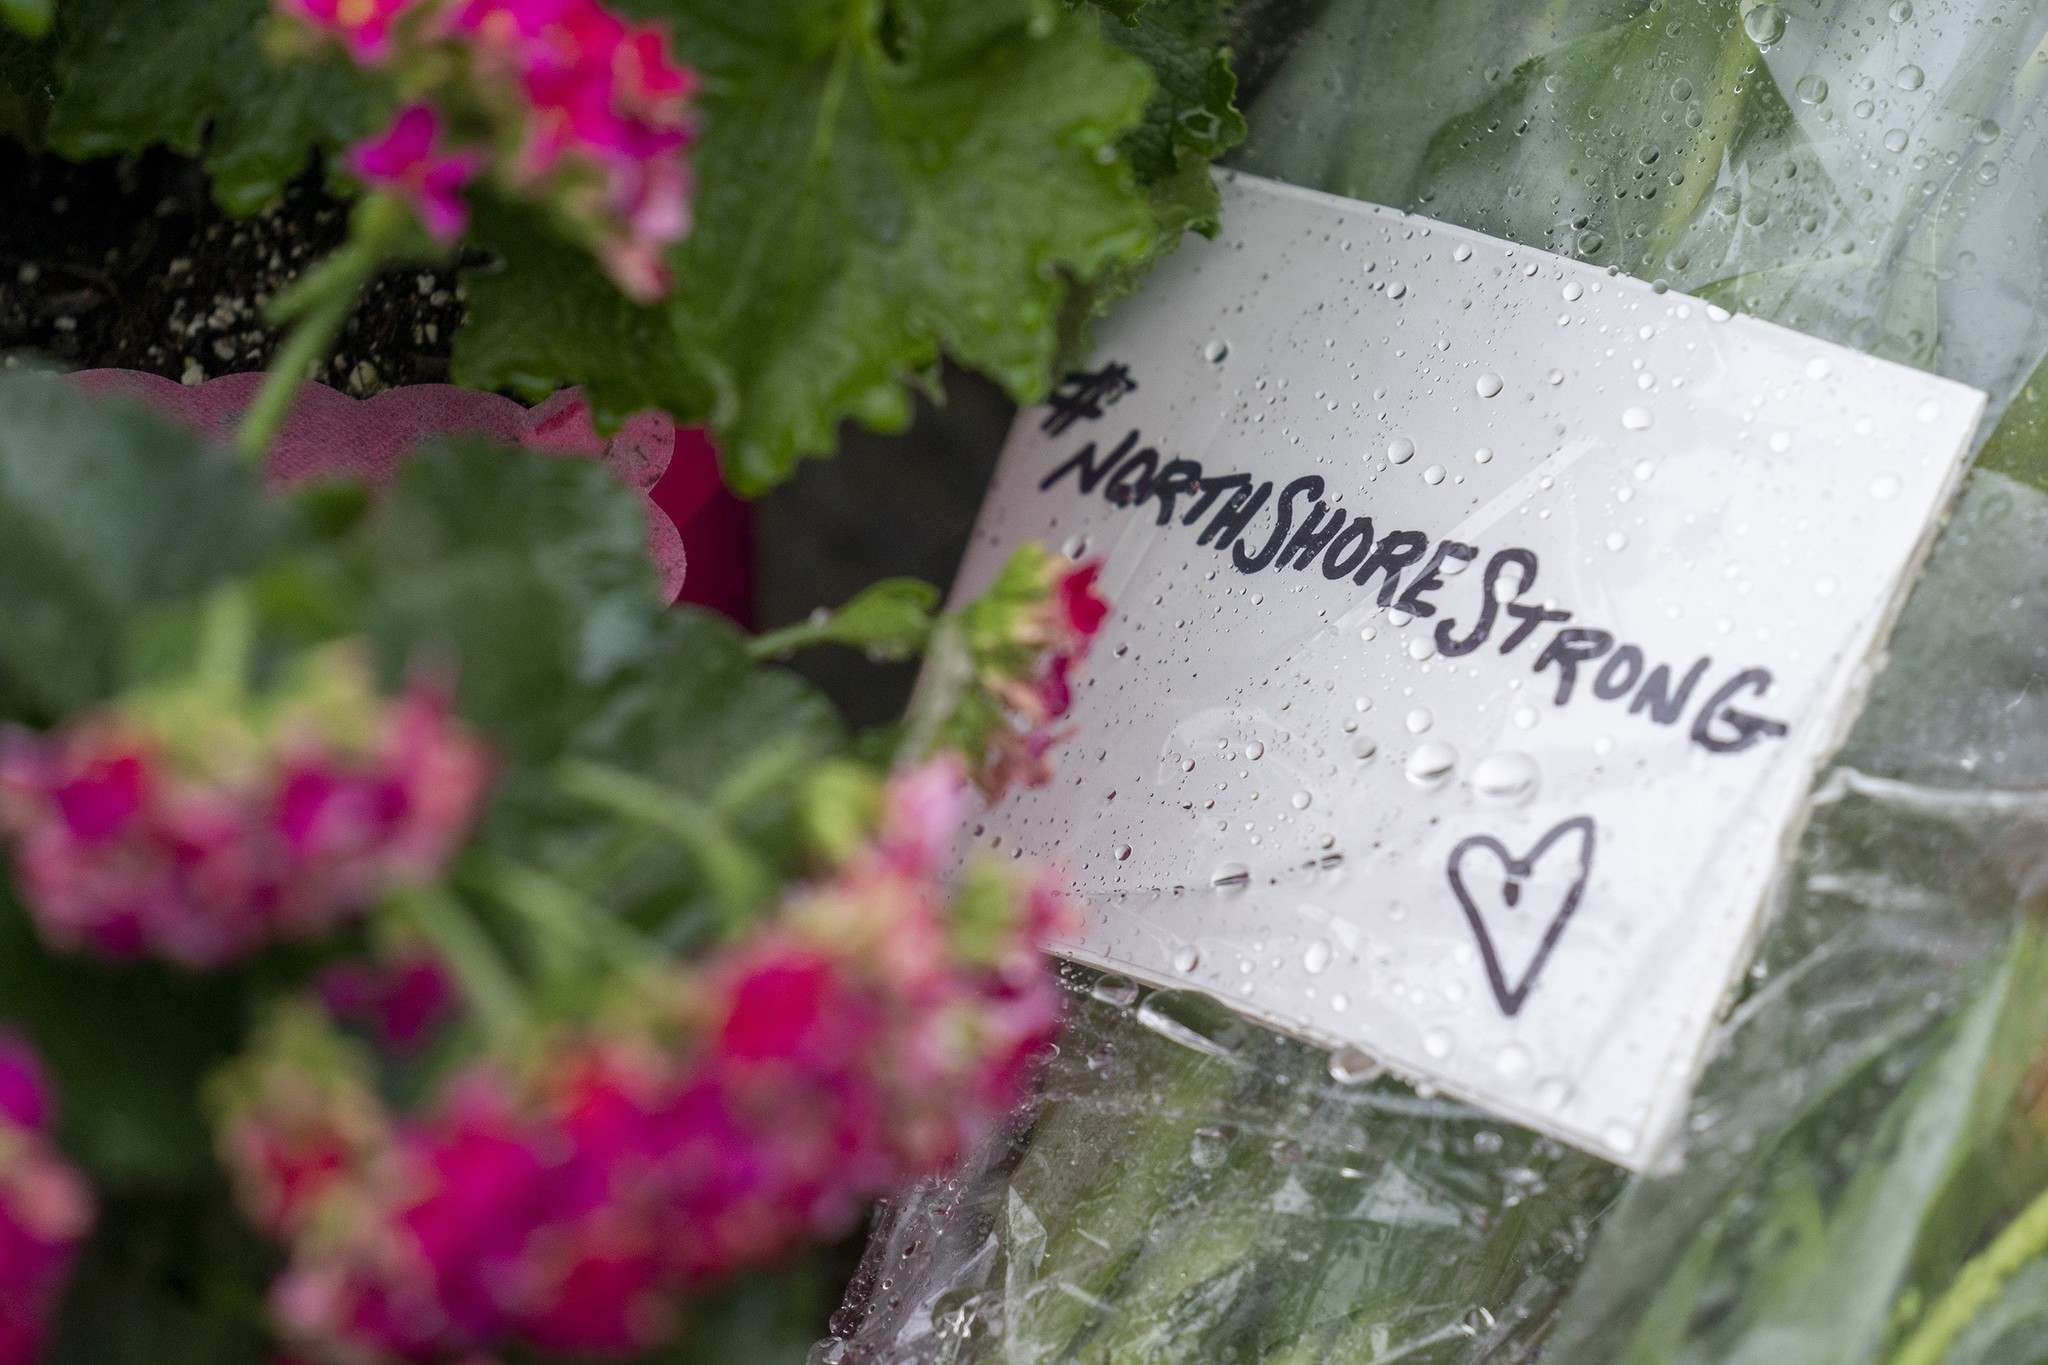 Flowers and notes are seen at a makeshift memorial for the stabbing victims that were attacked by Yannick Bandaogo on Saturday.